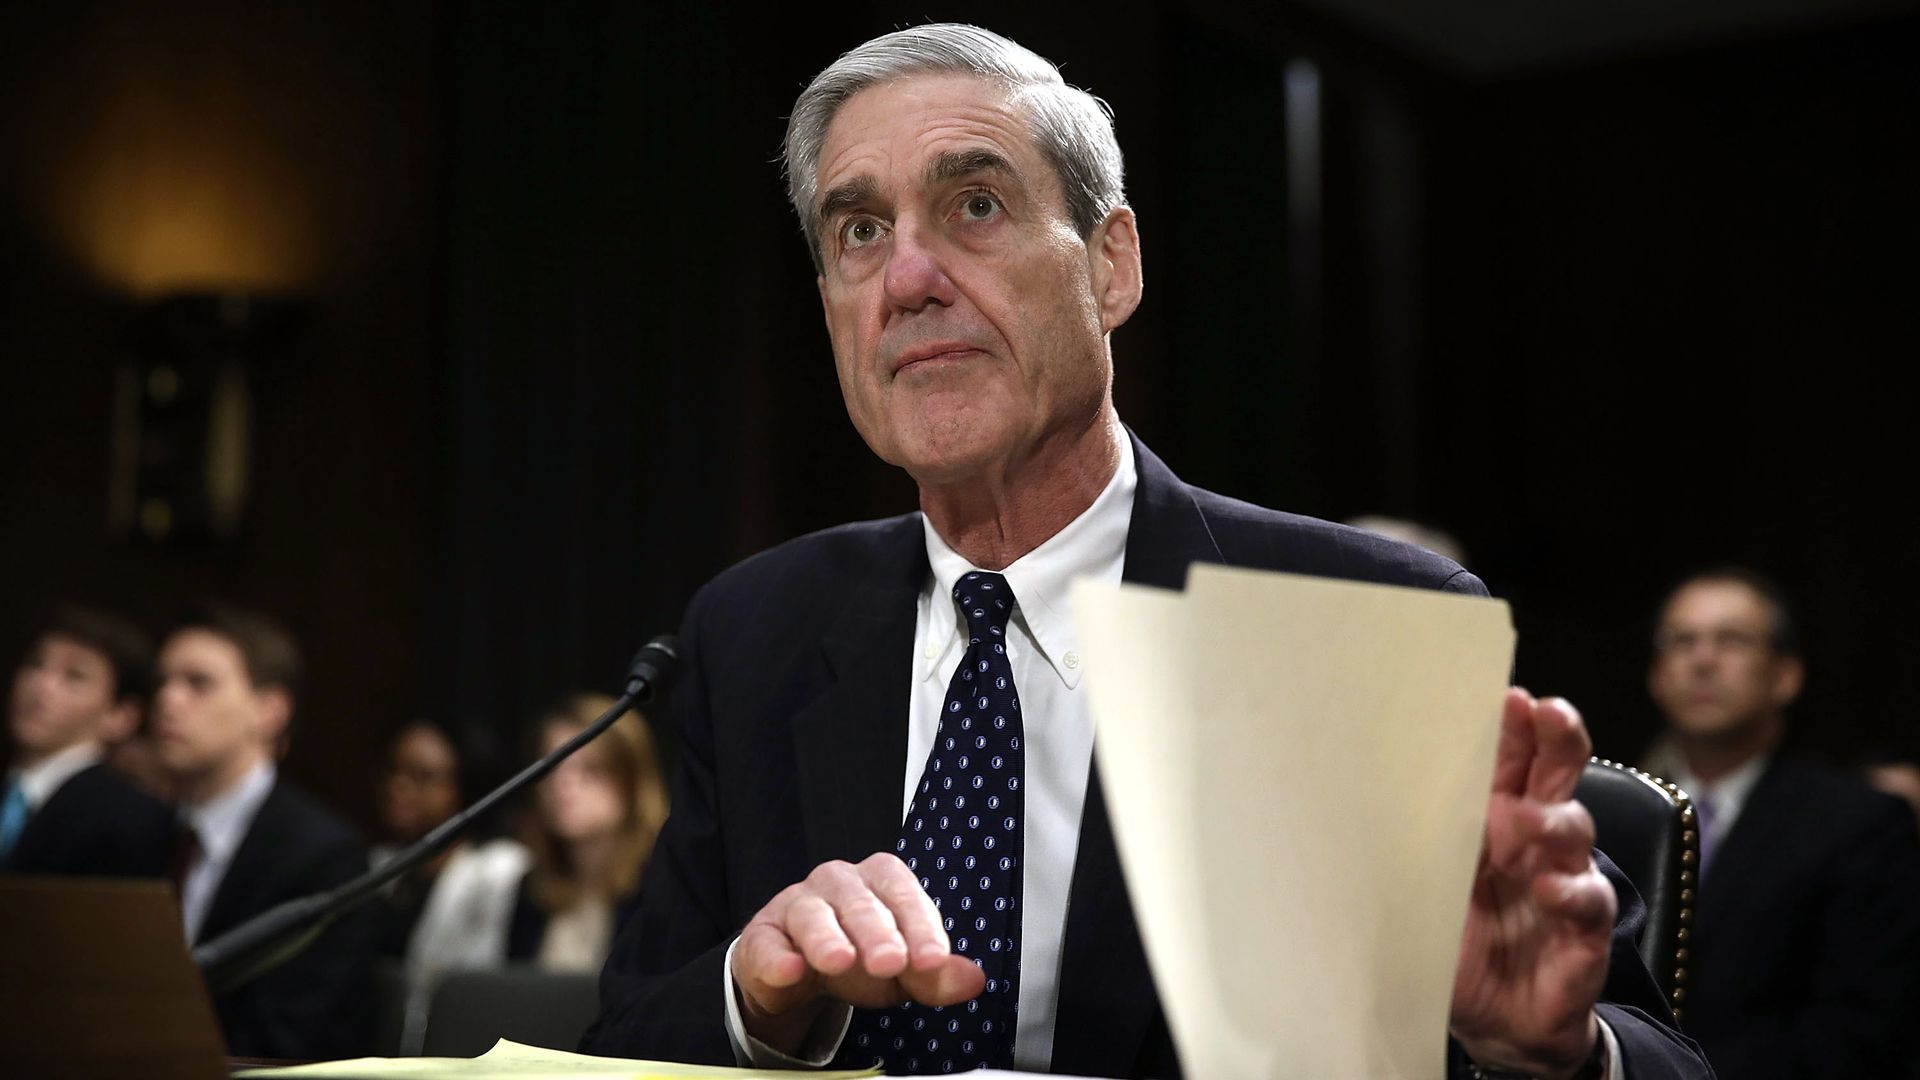 A firm has been fighting a subpoena brought by Special Counsel Robert Mueller.